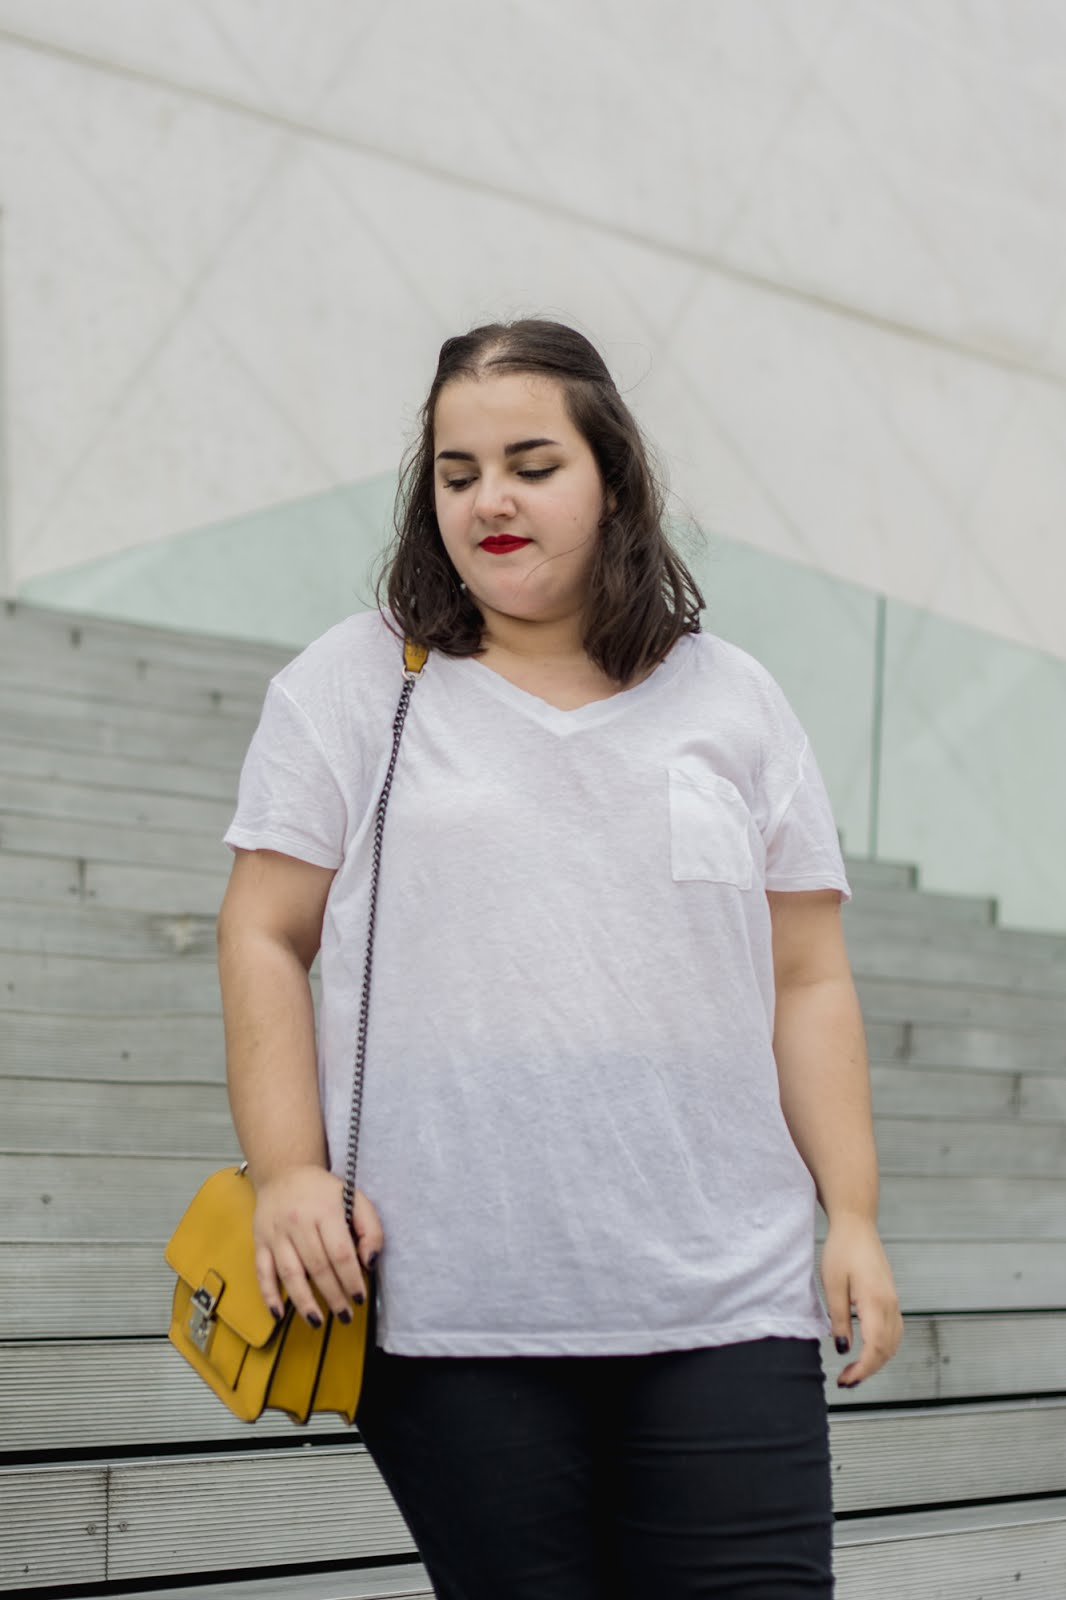 Outfit of the day - White t-shirt, jeans and a mustard yellow bag. A plus size OOTD